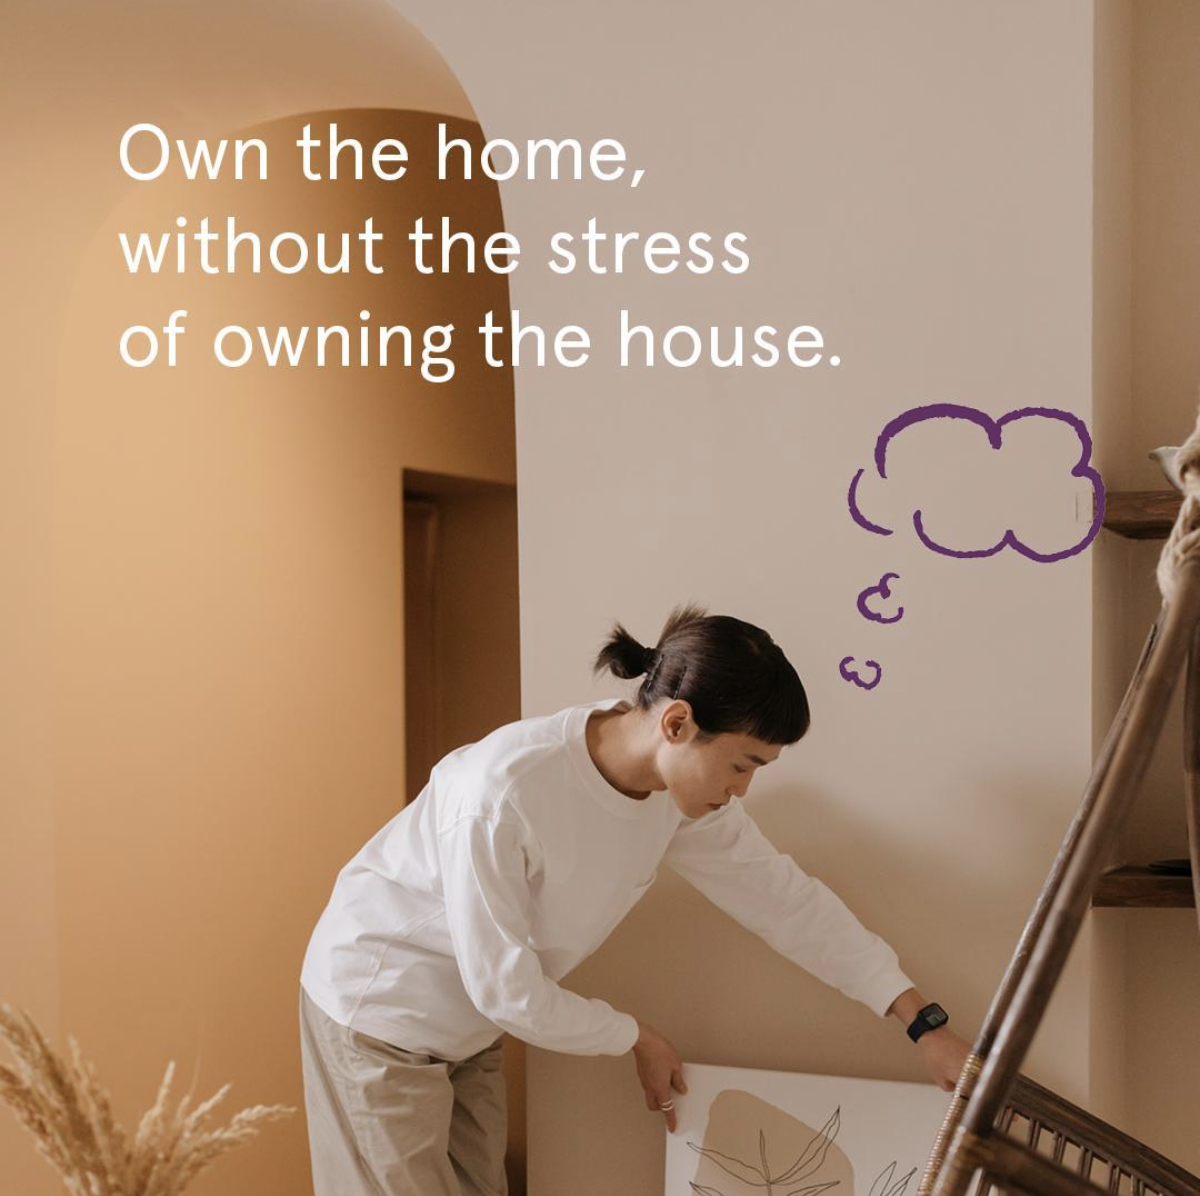 Own the home, without owning the house